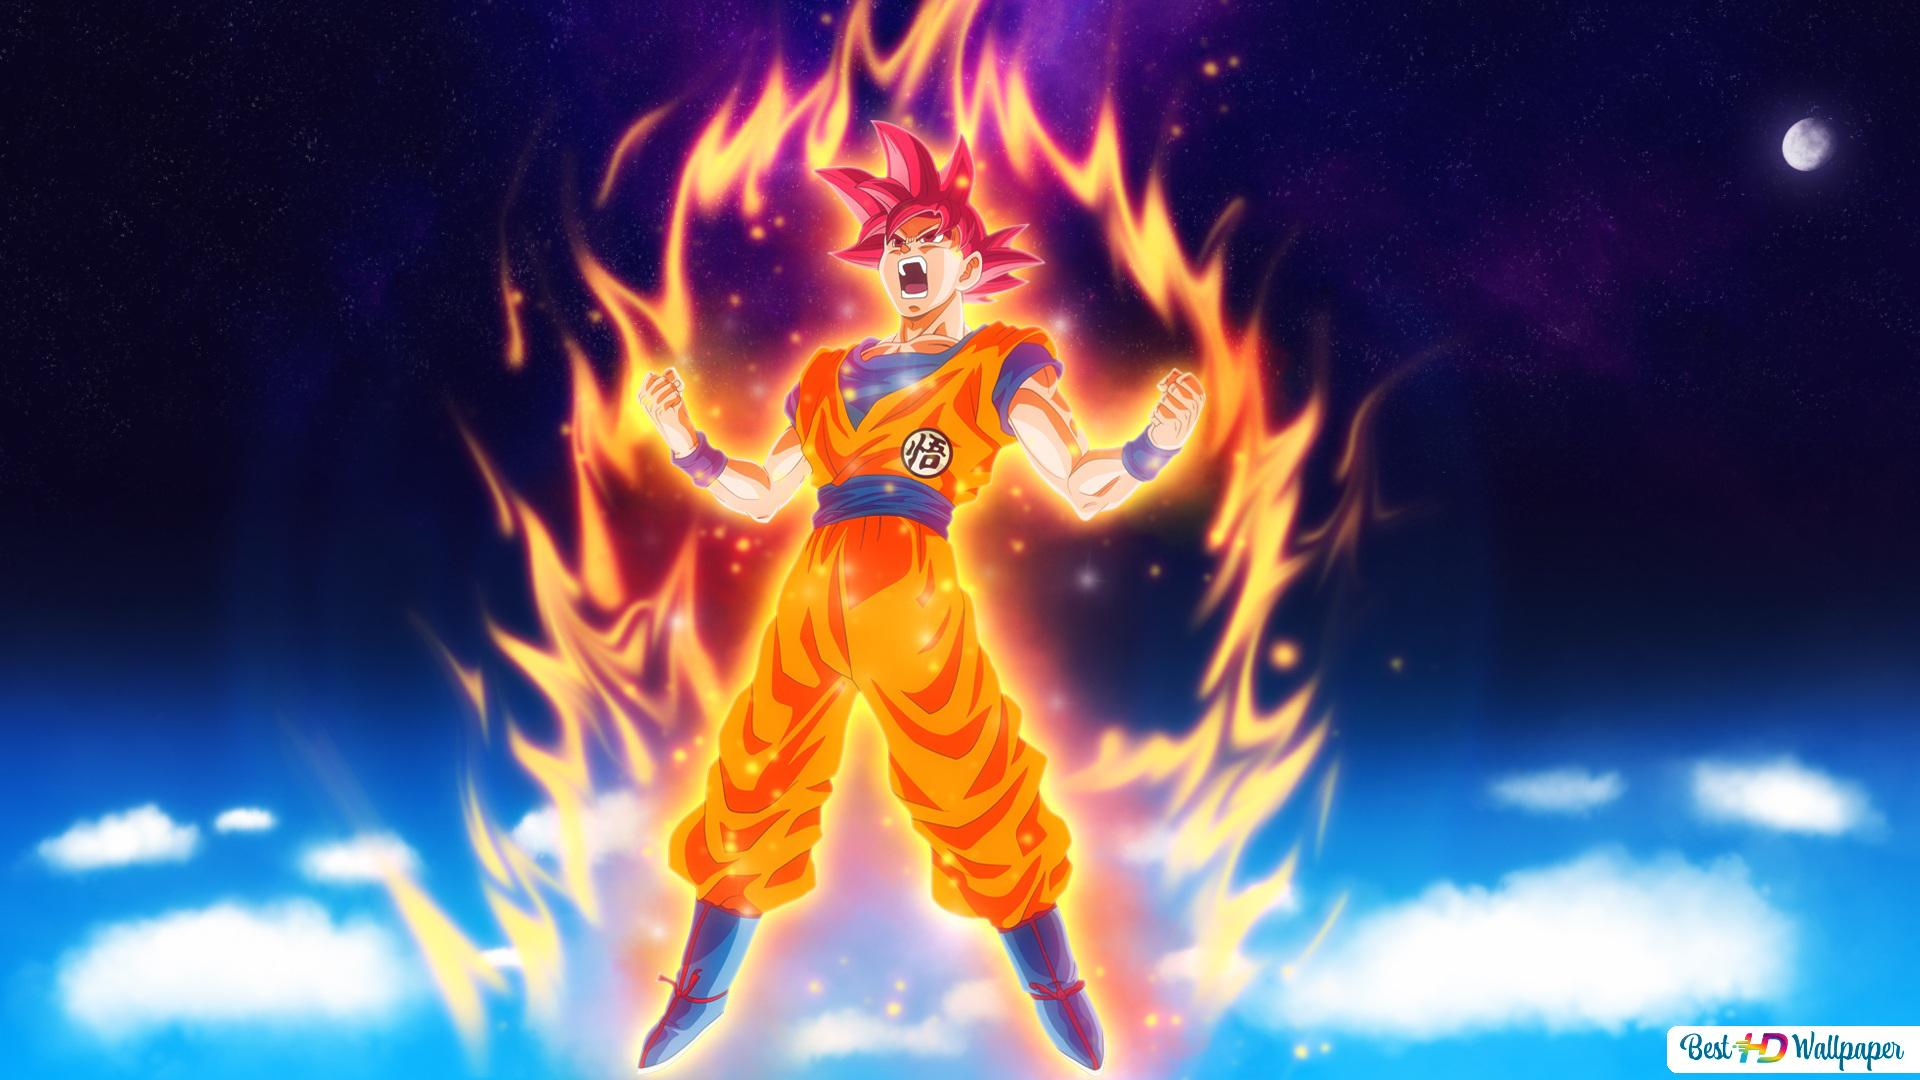 Goku Super Saiyan God Hd Wallpaper Download